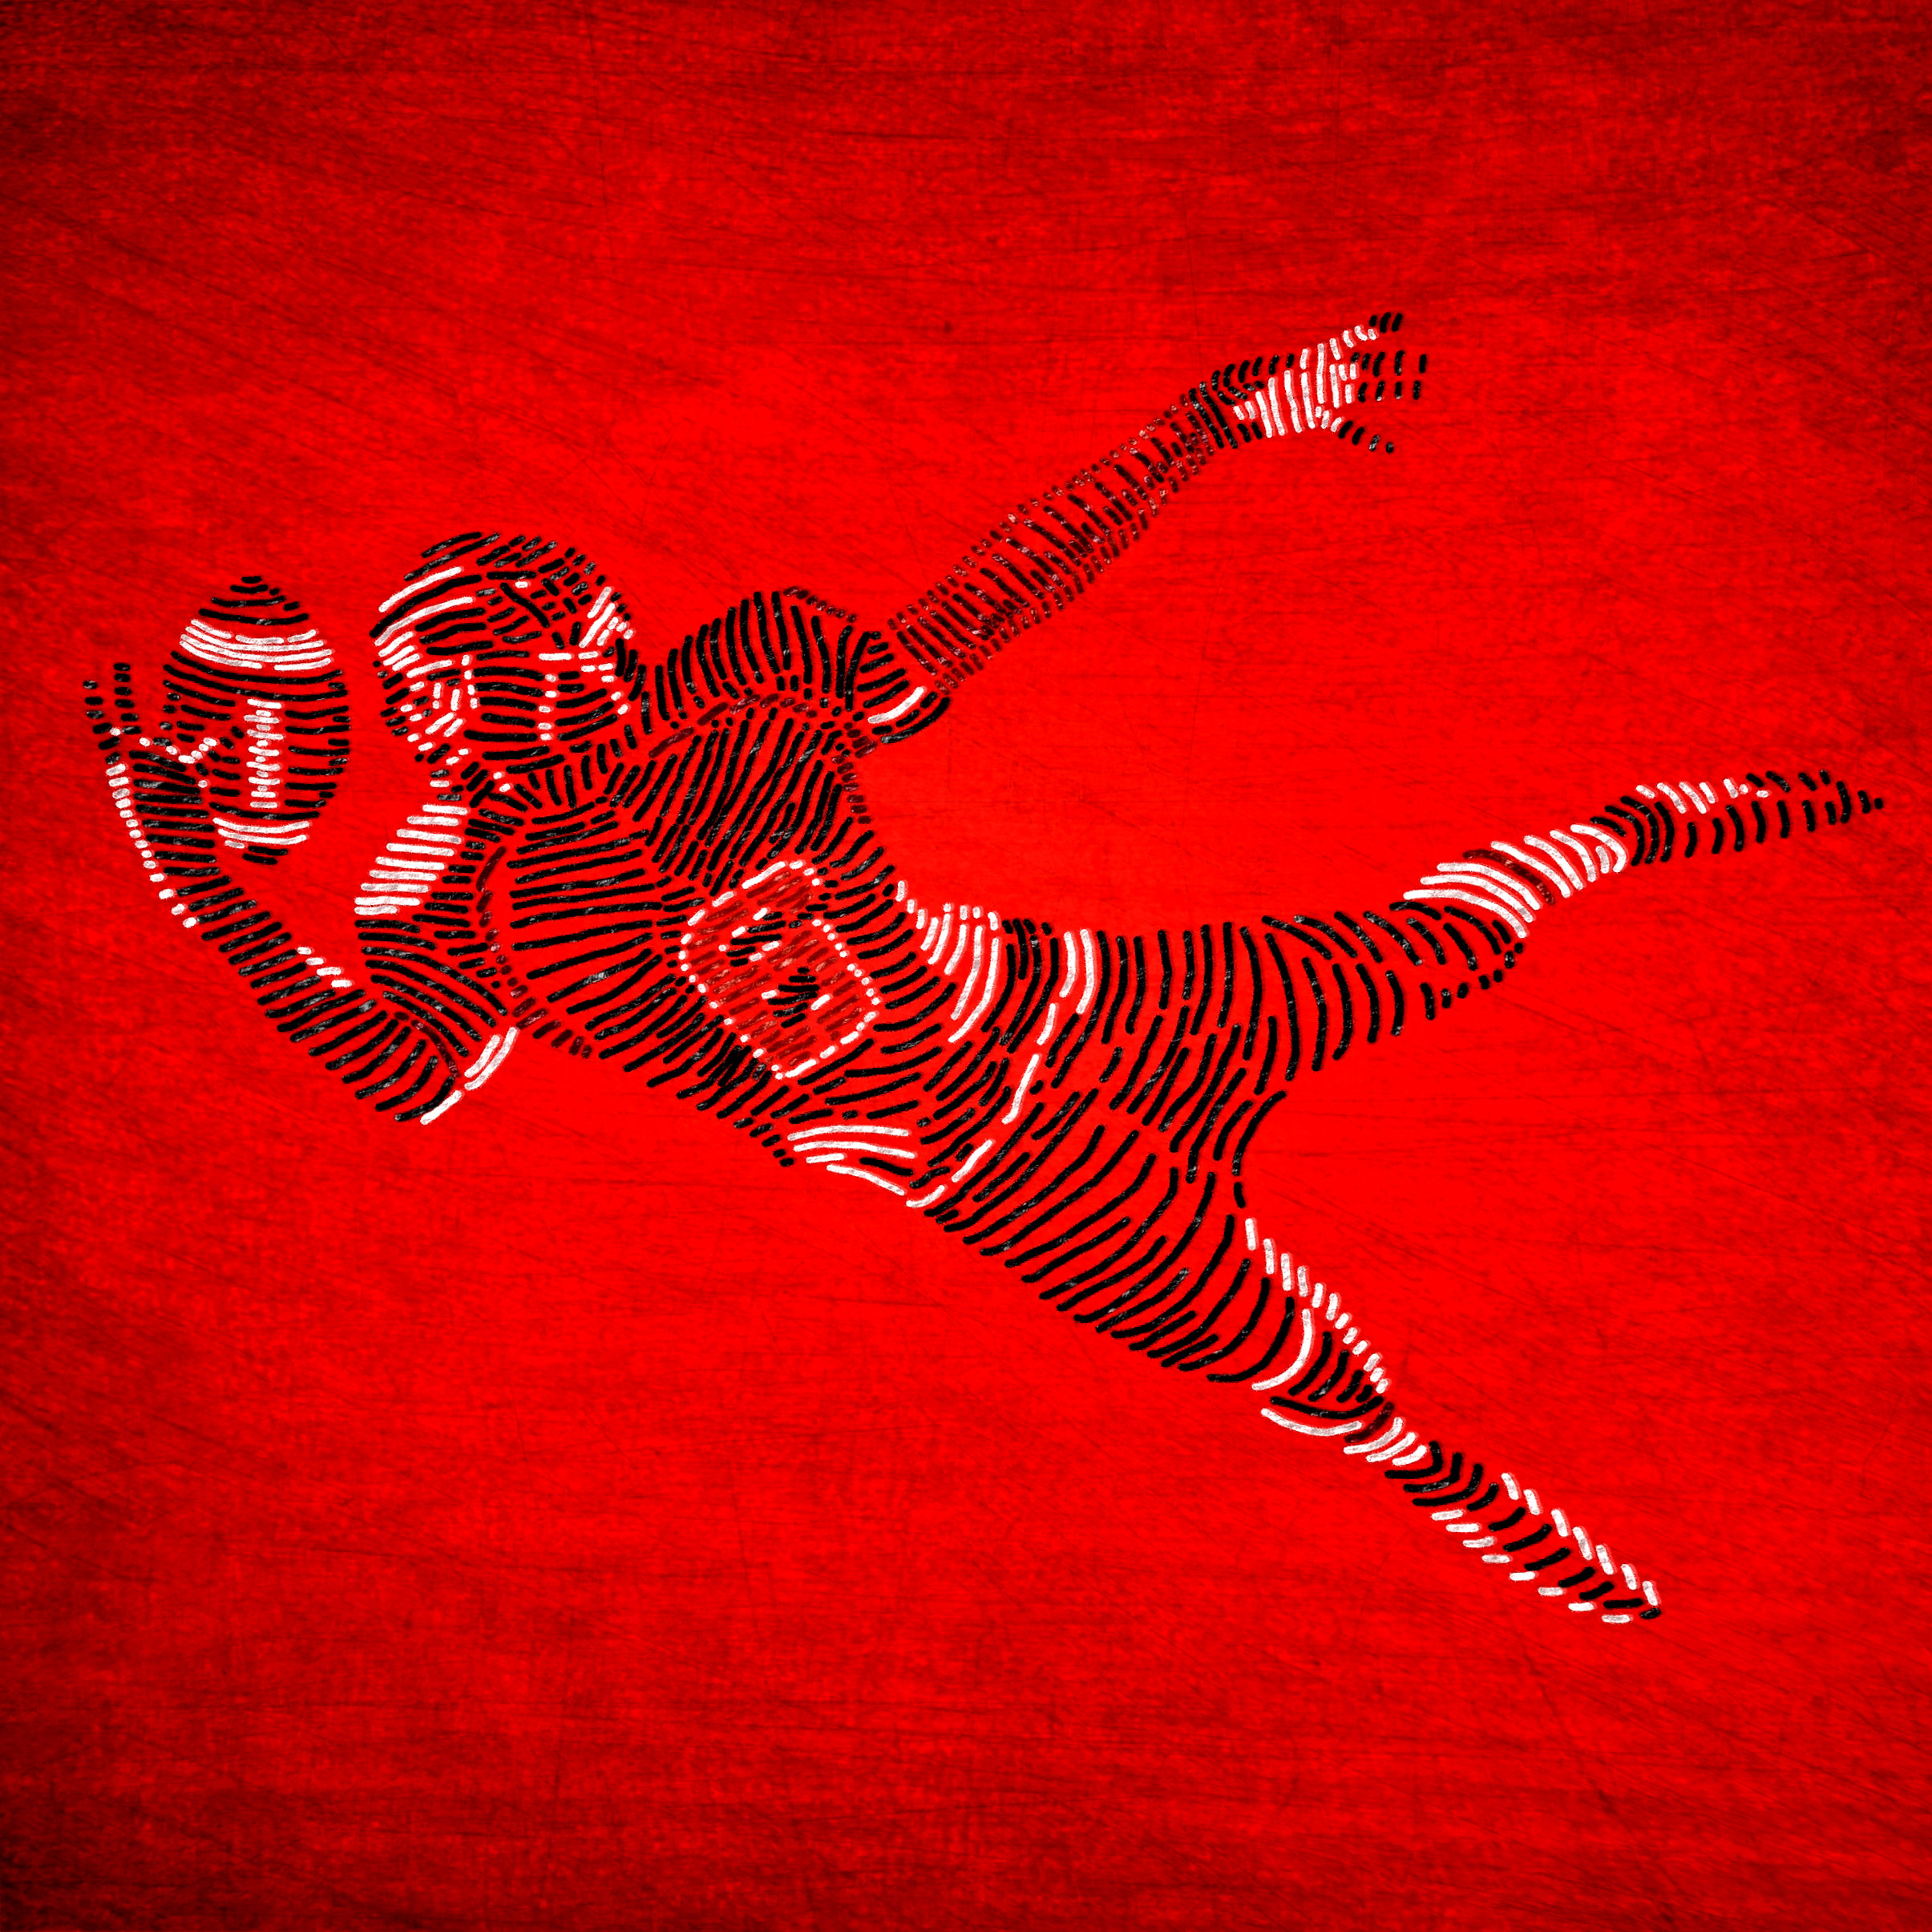 American football player on red background photo